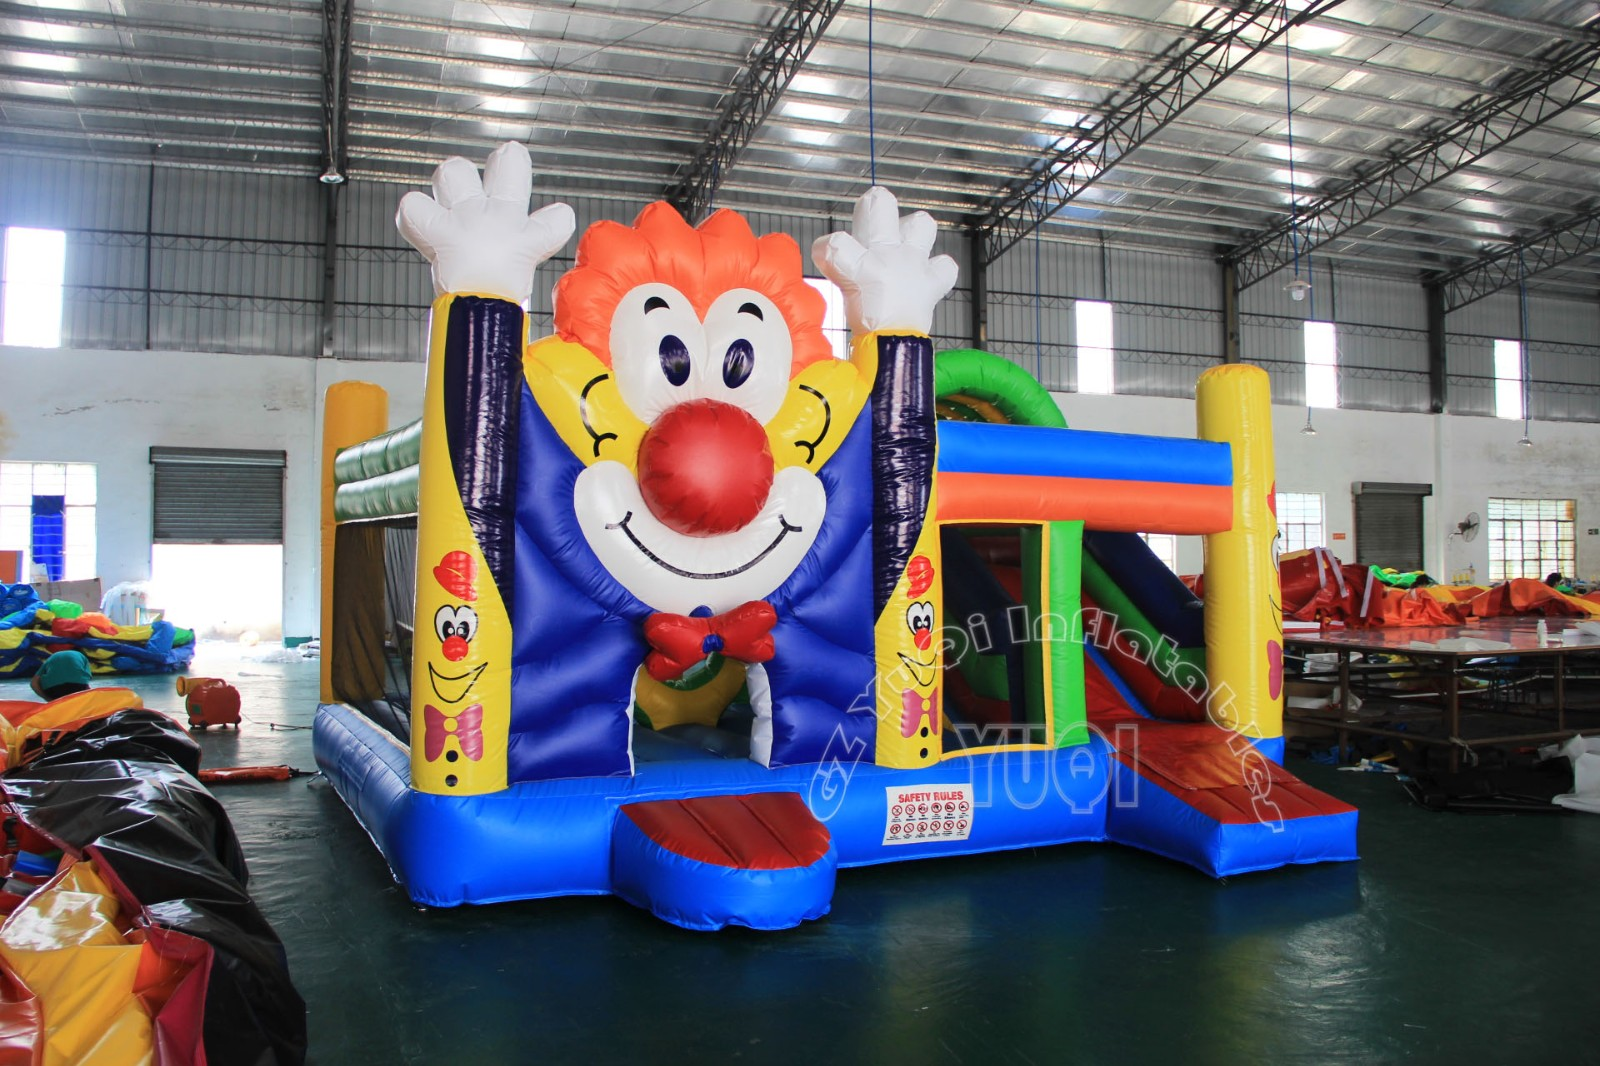 YUQI-High-quality Yq37 Happy Clown Inflatable Bounce House Slide Combo